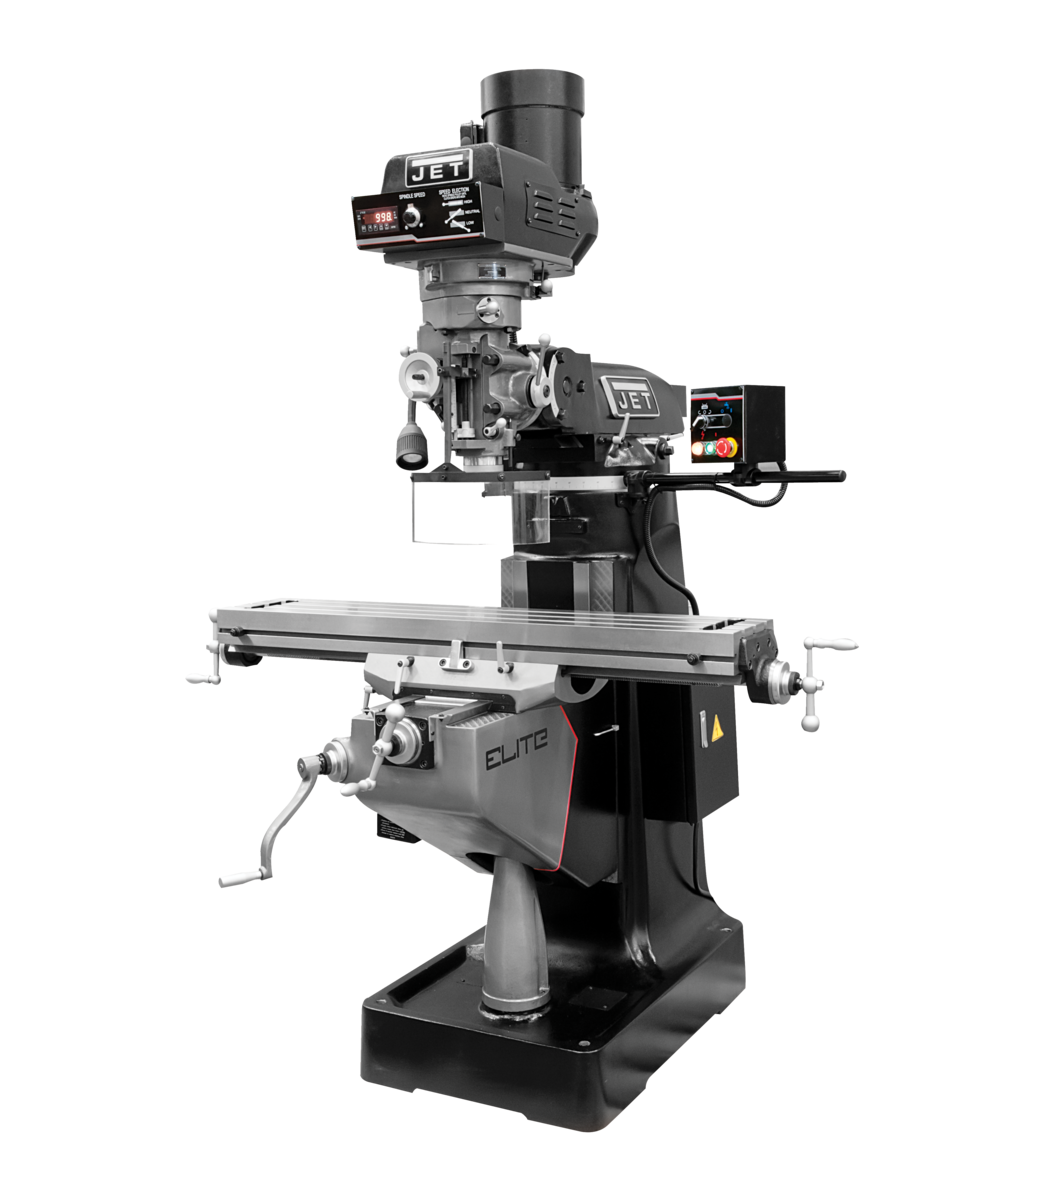 EVS-949 Mill with 3-Axis ACU-RITE 203 (Quill) DRO and X, Y, Z-Axis JET Powerfeeds and USA Made Air Draw Bar